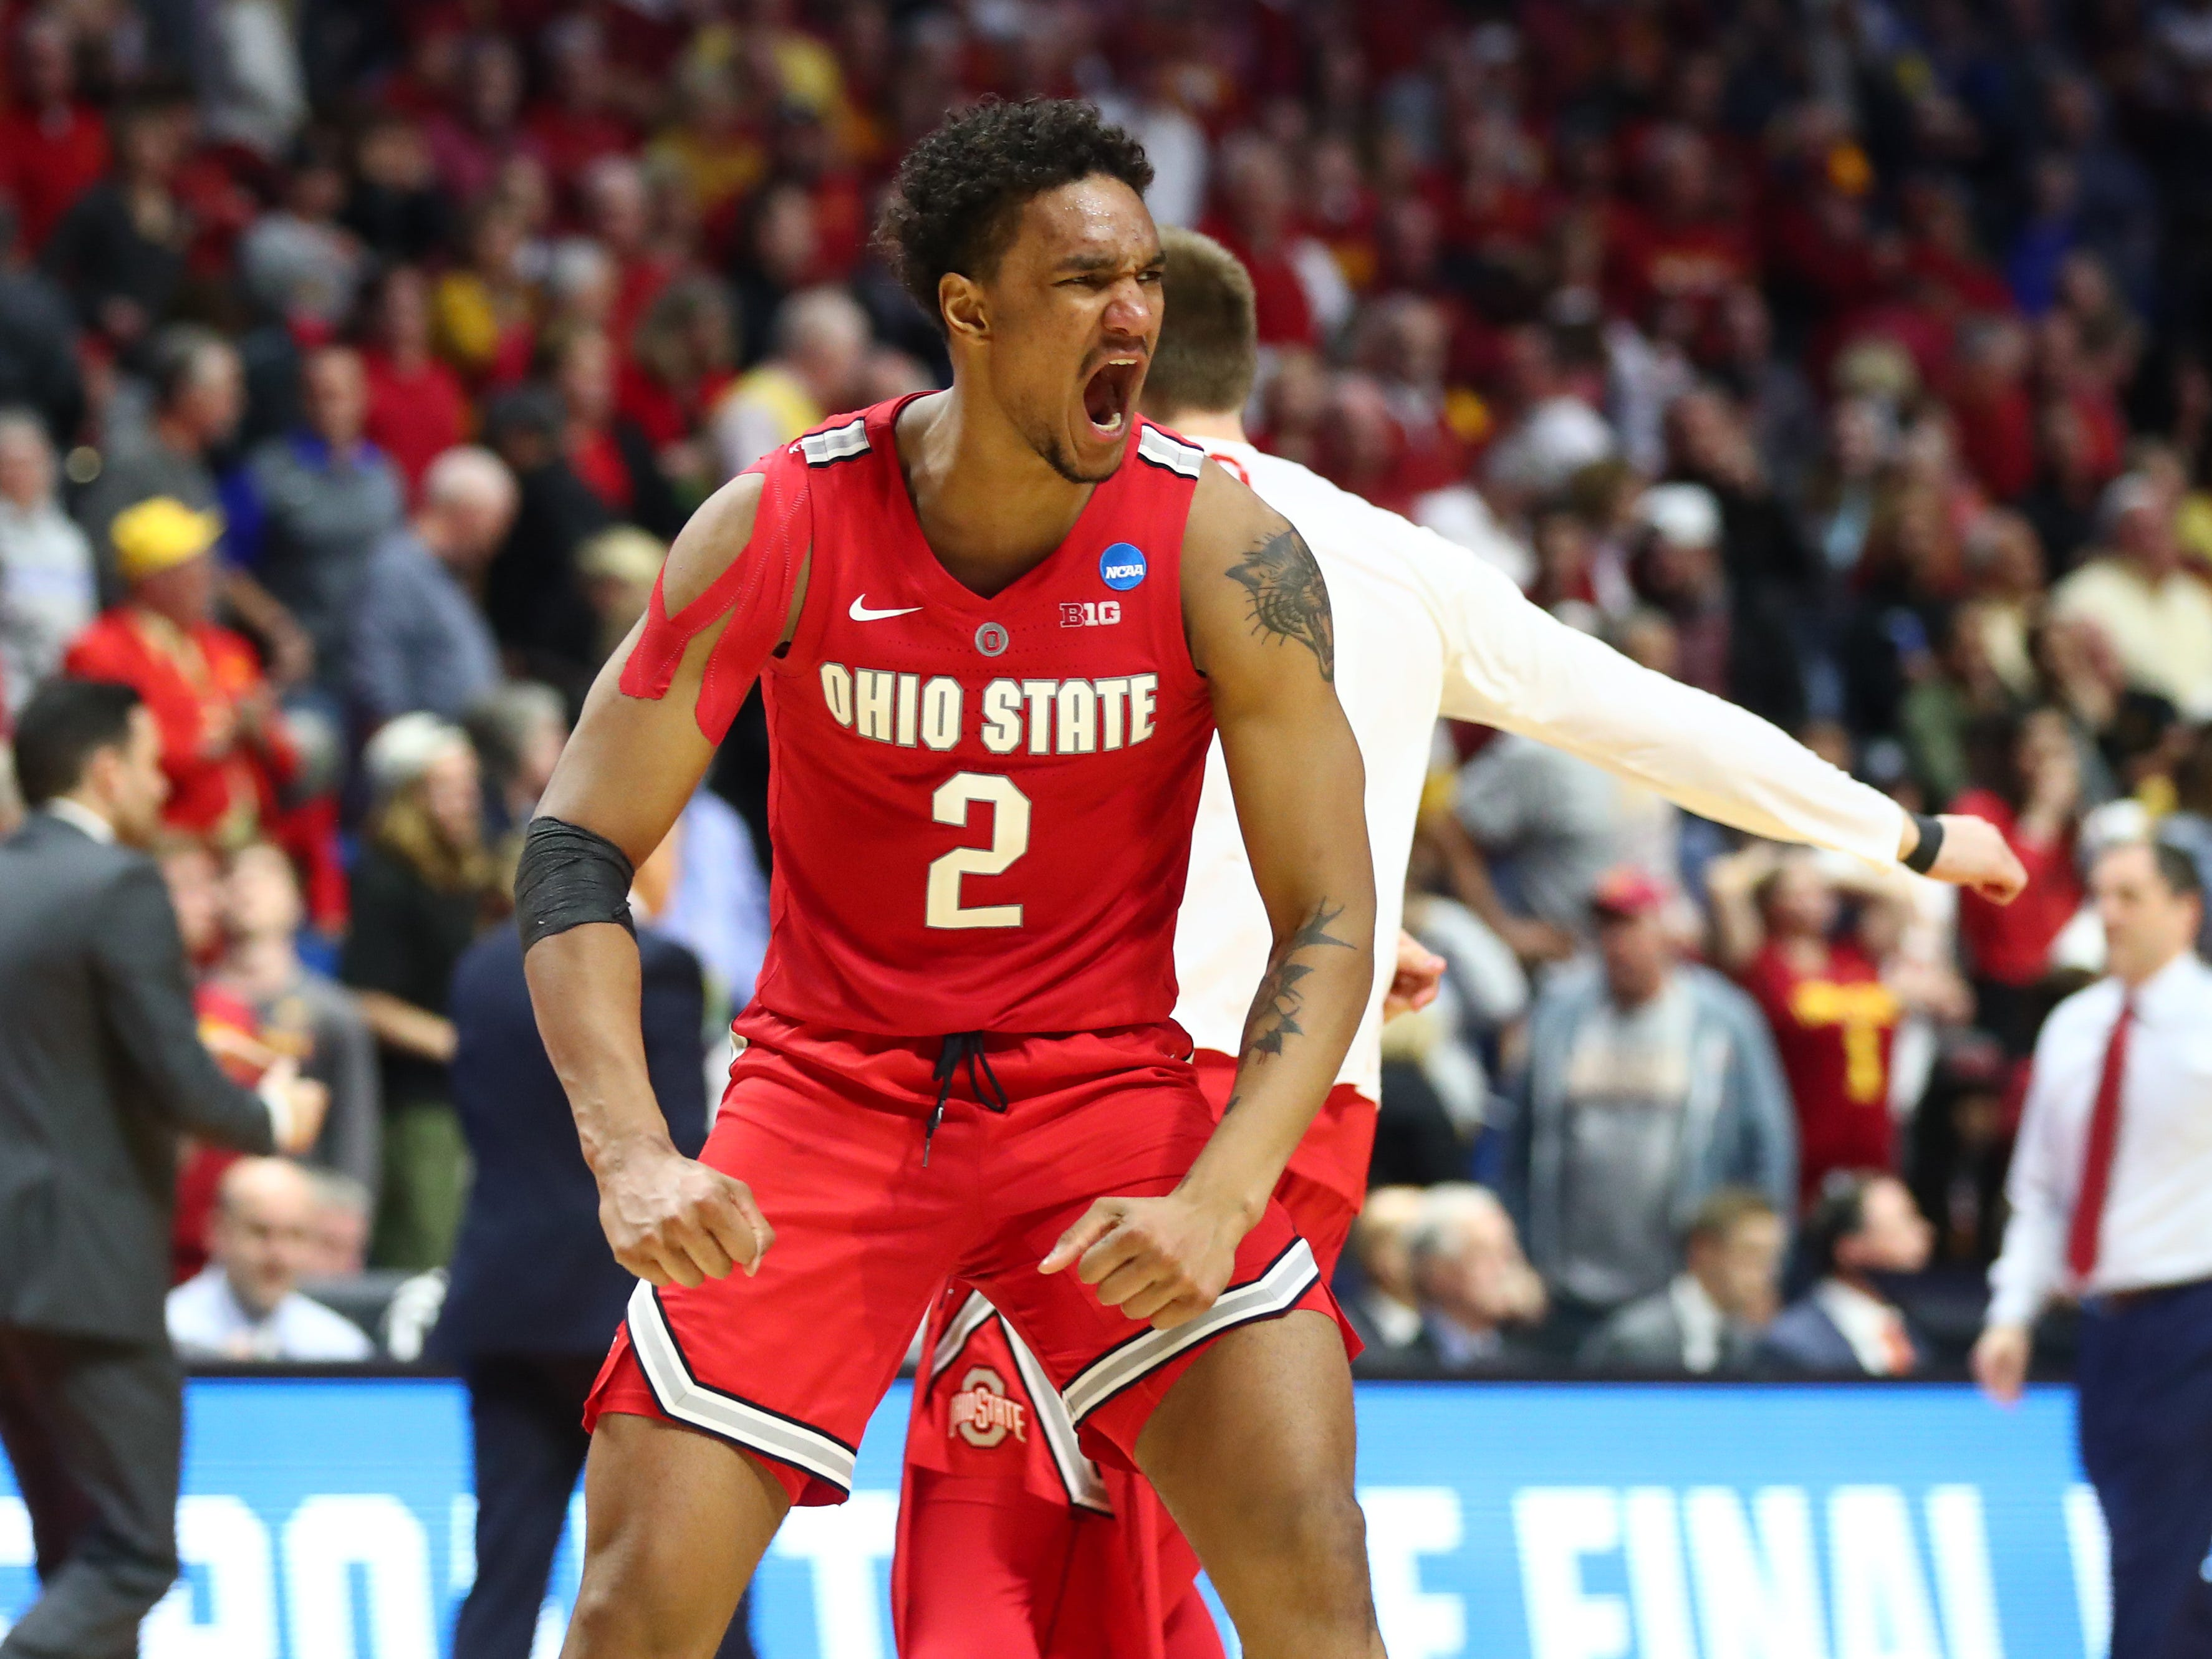 First round: Ohio State Buckeyes guard Musa Jallow celebrates during his team's win over the Iowa State Cyclones.